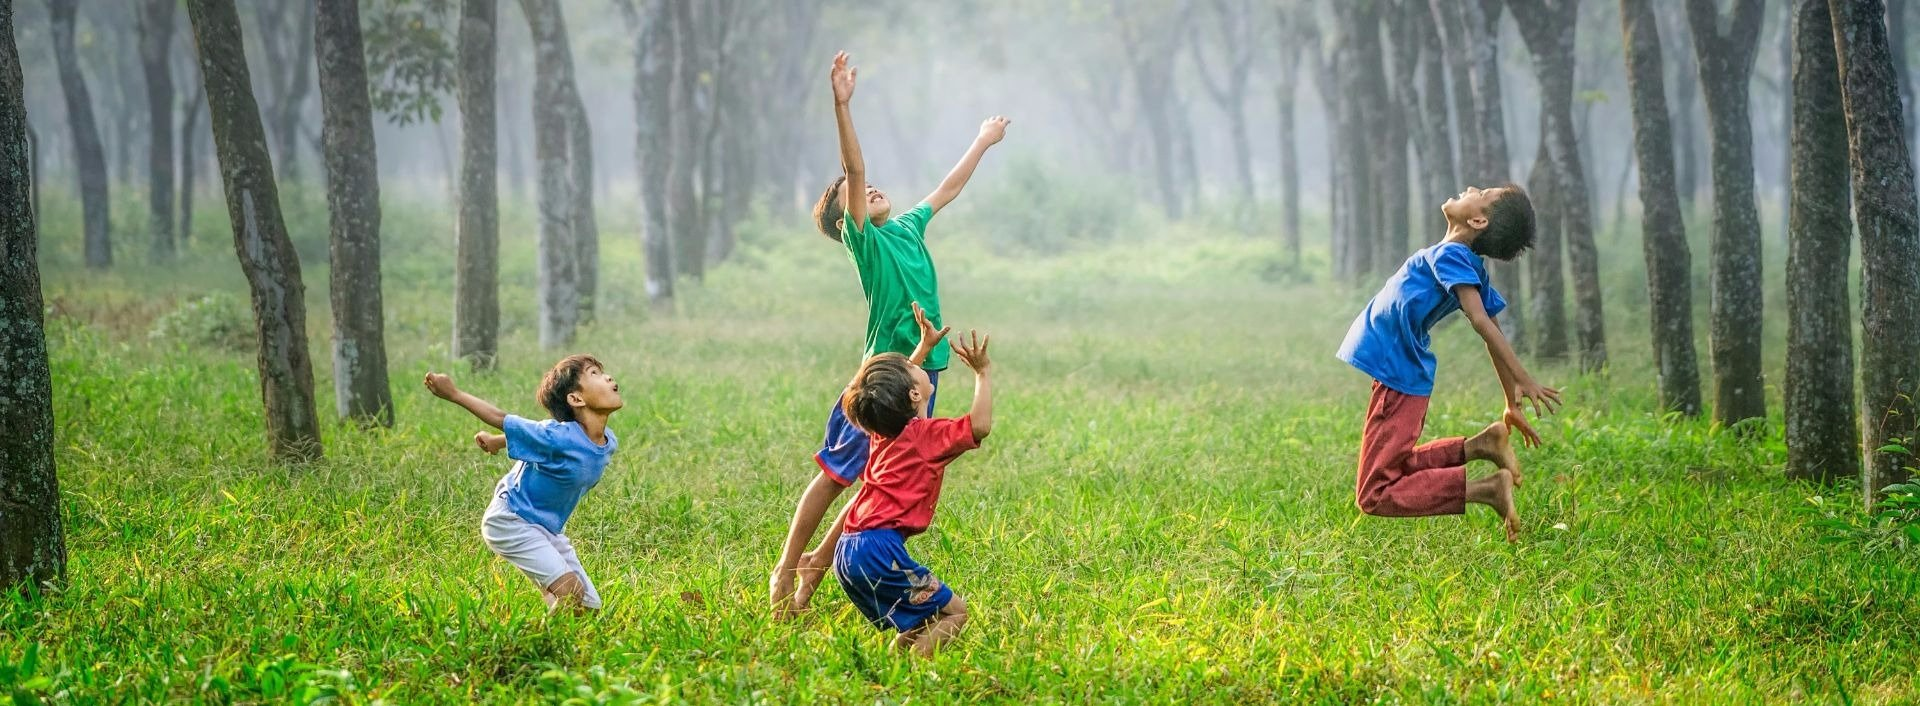 Children playing in a field using easy English sentences.